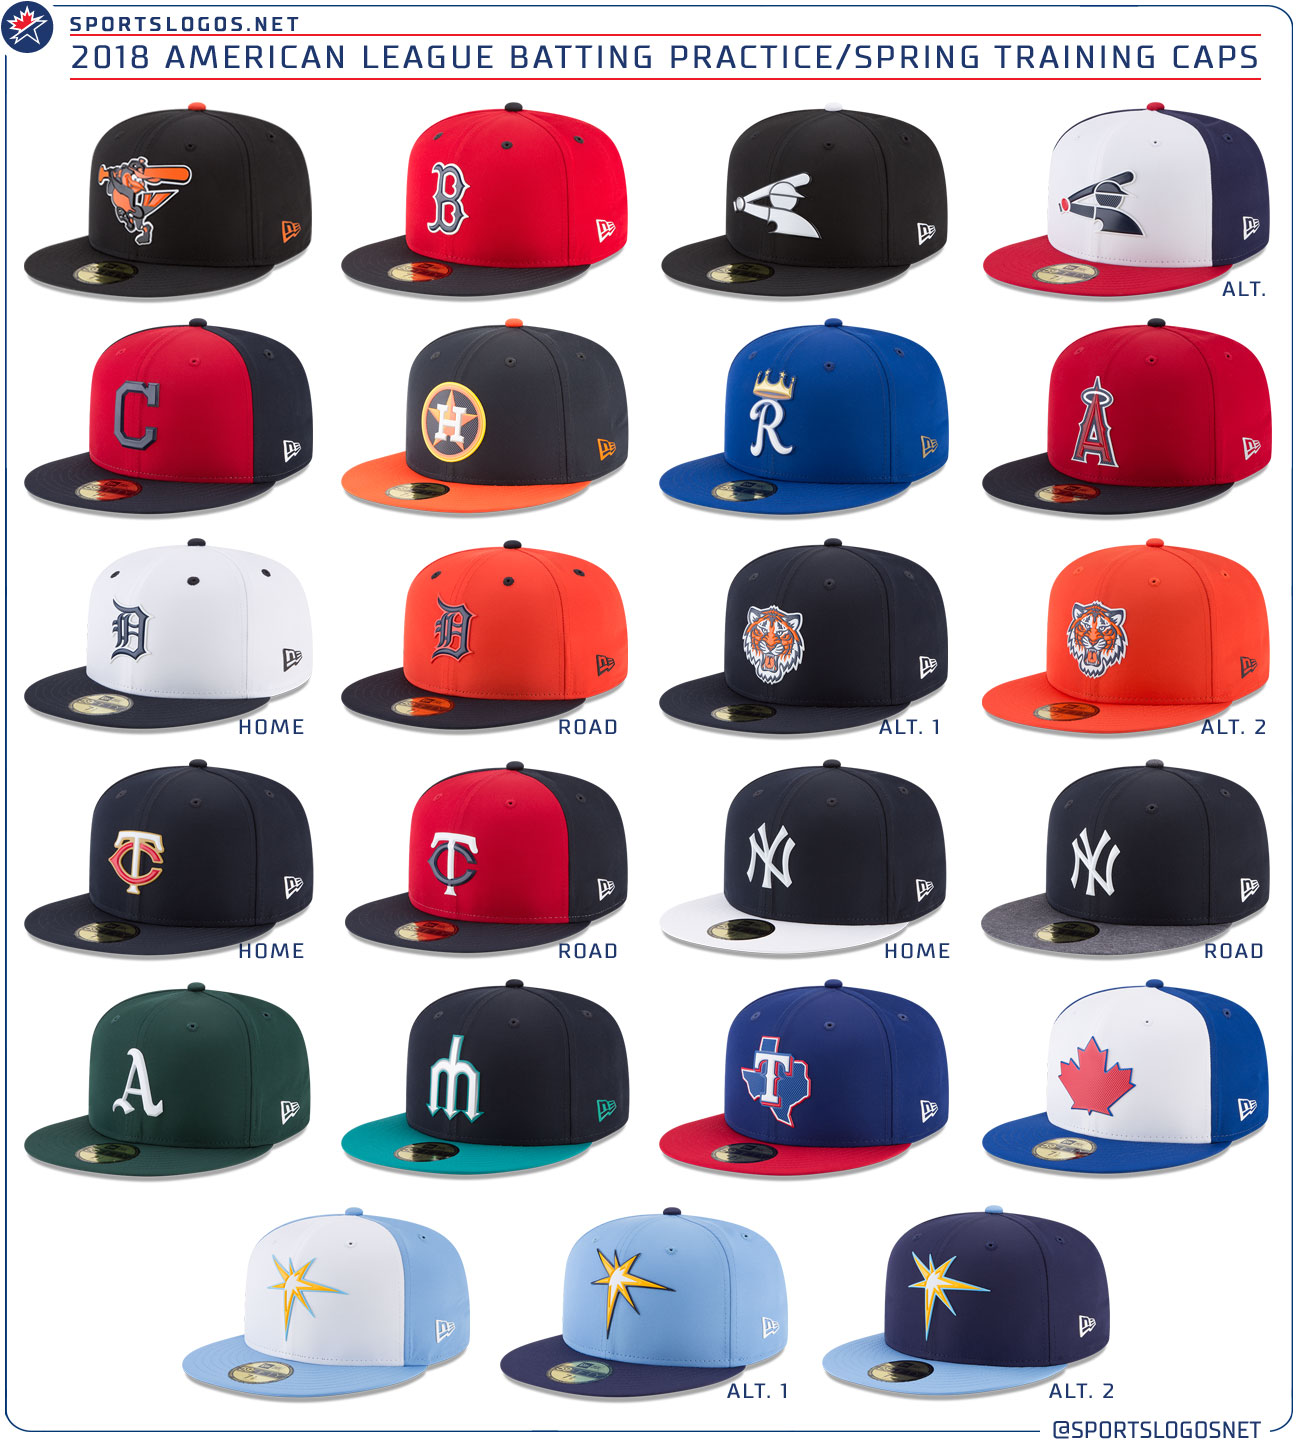 423bea856e5 Major change in BP caps in 2018 – The Dutch Baseball Hangout